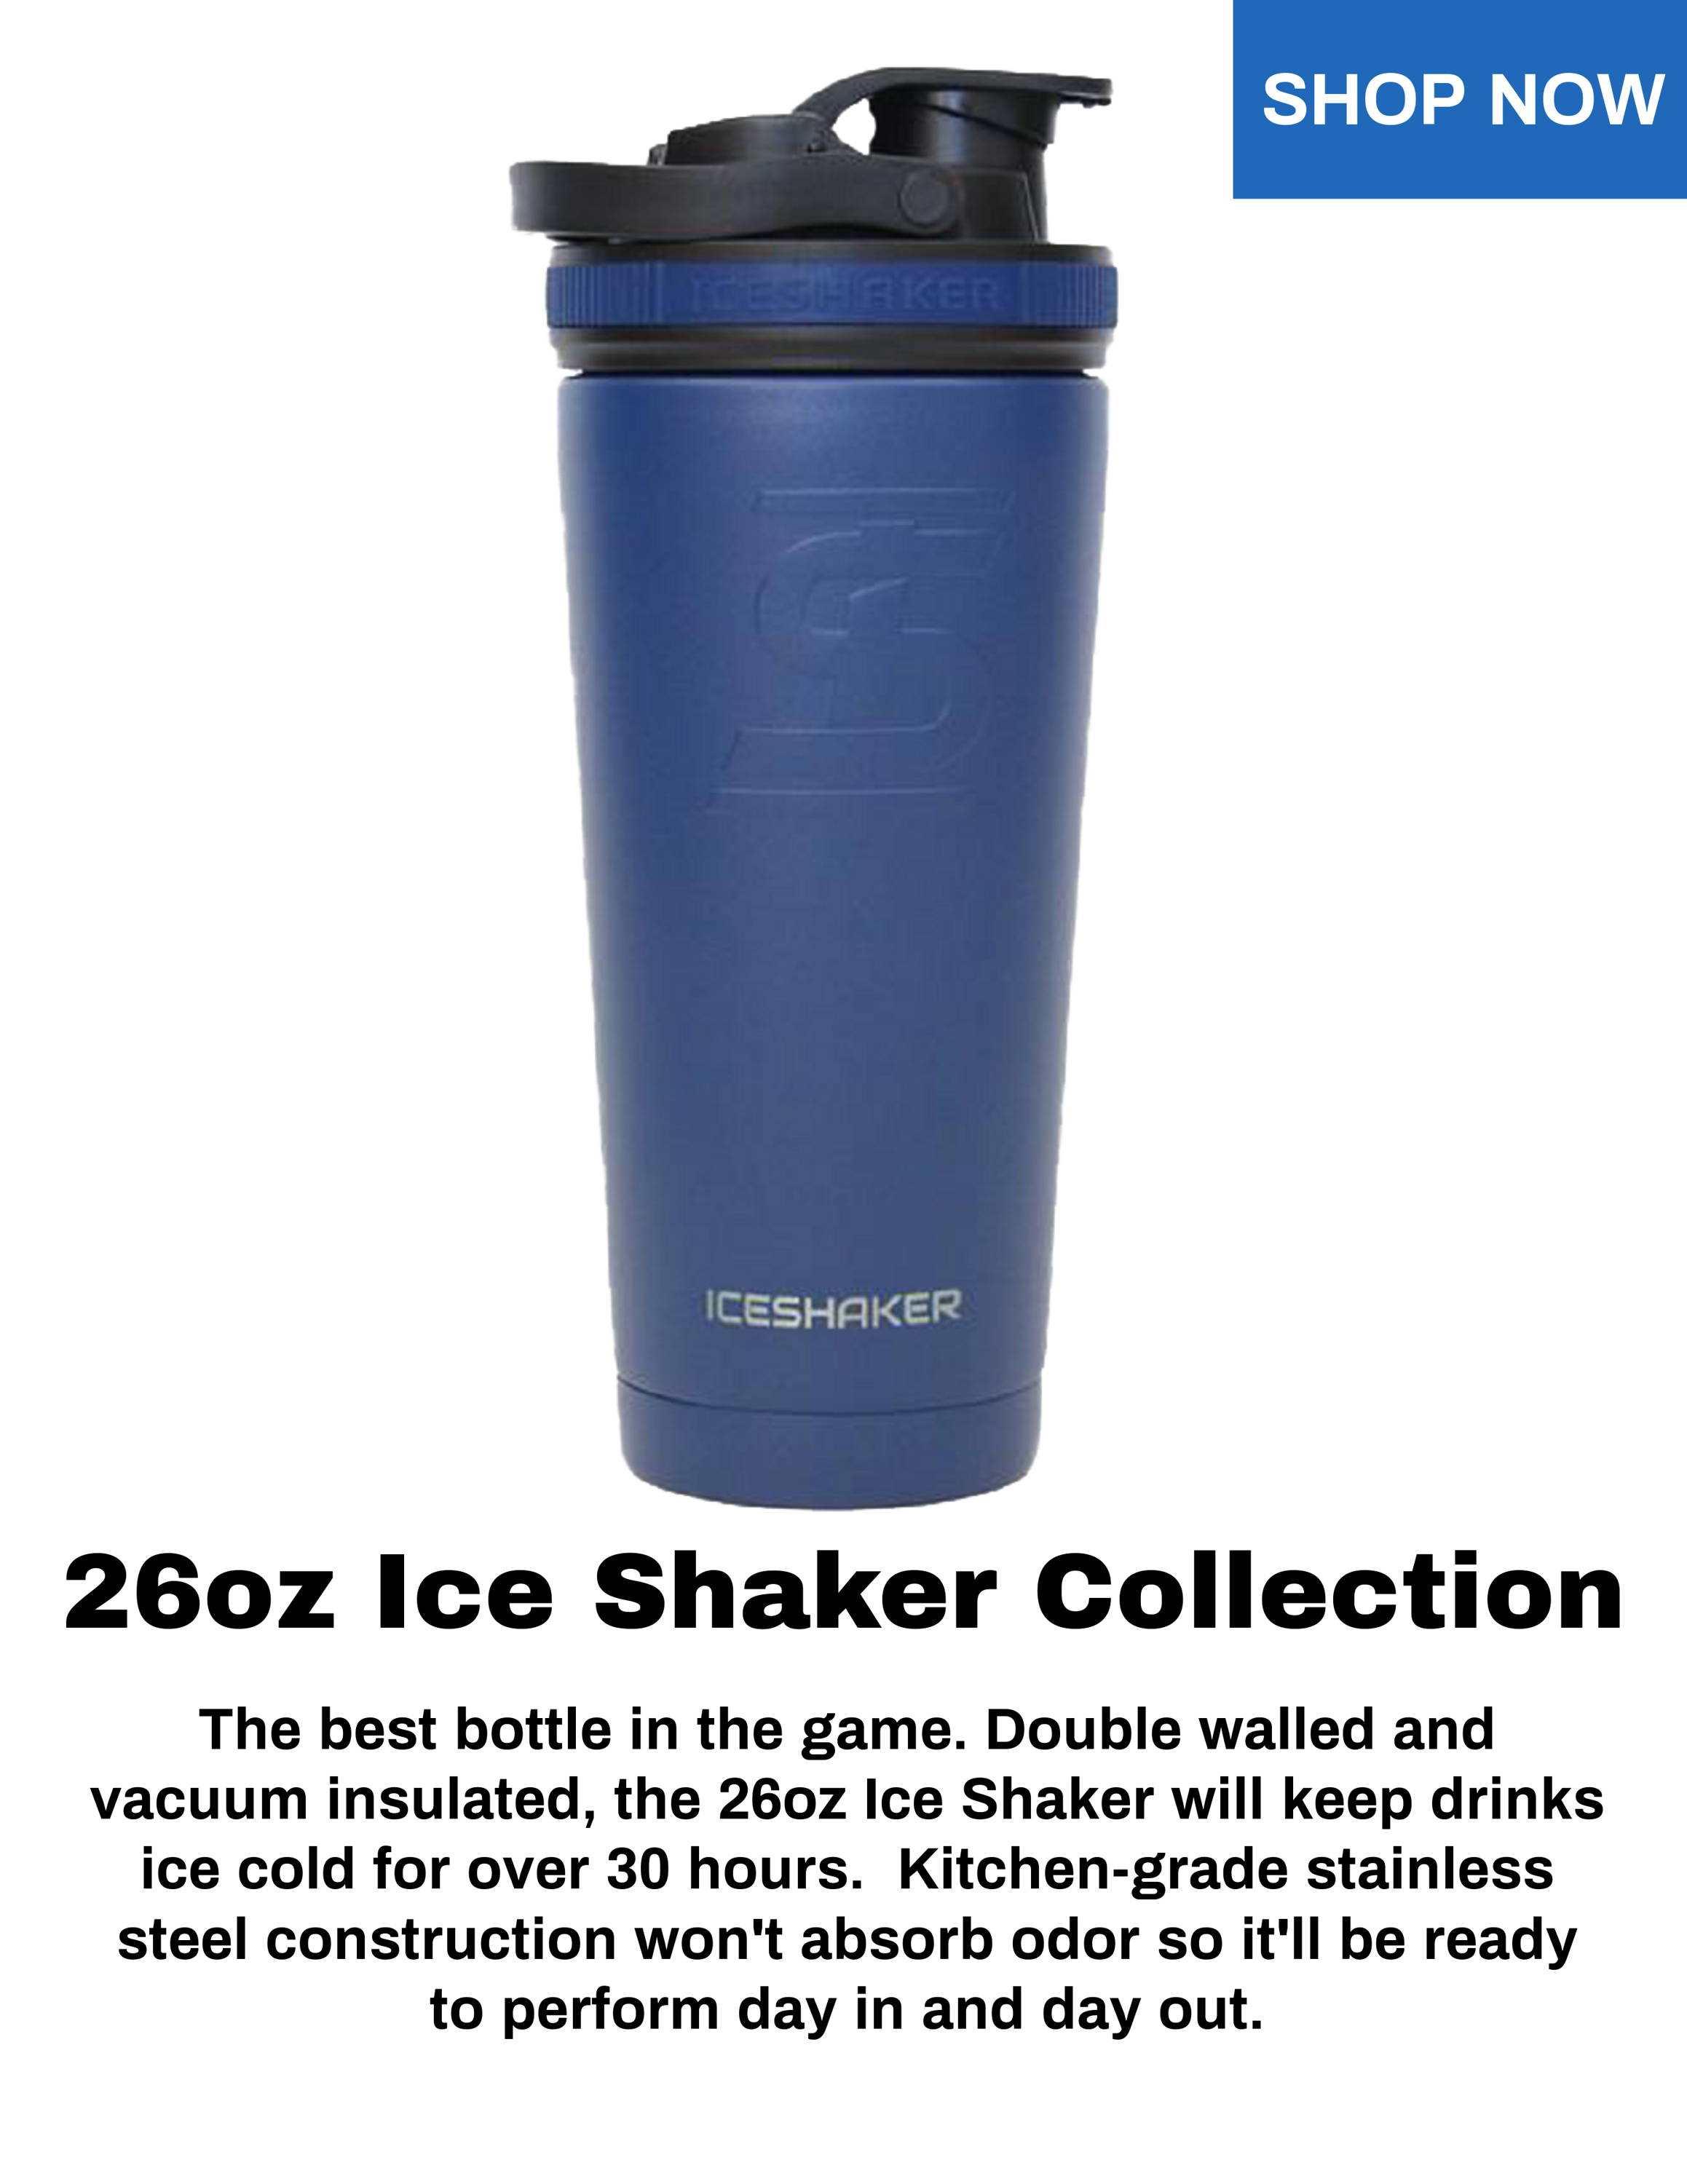 Stainless Steel Insulated Water Bottle Protein Mixing Cup Purple 16oz Iceshaker